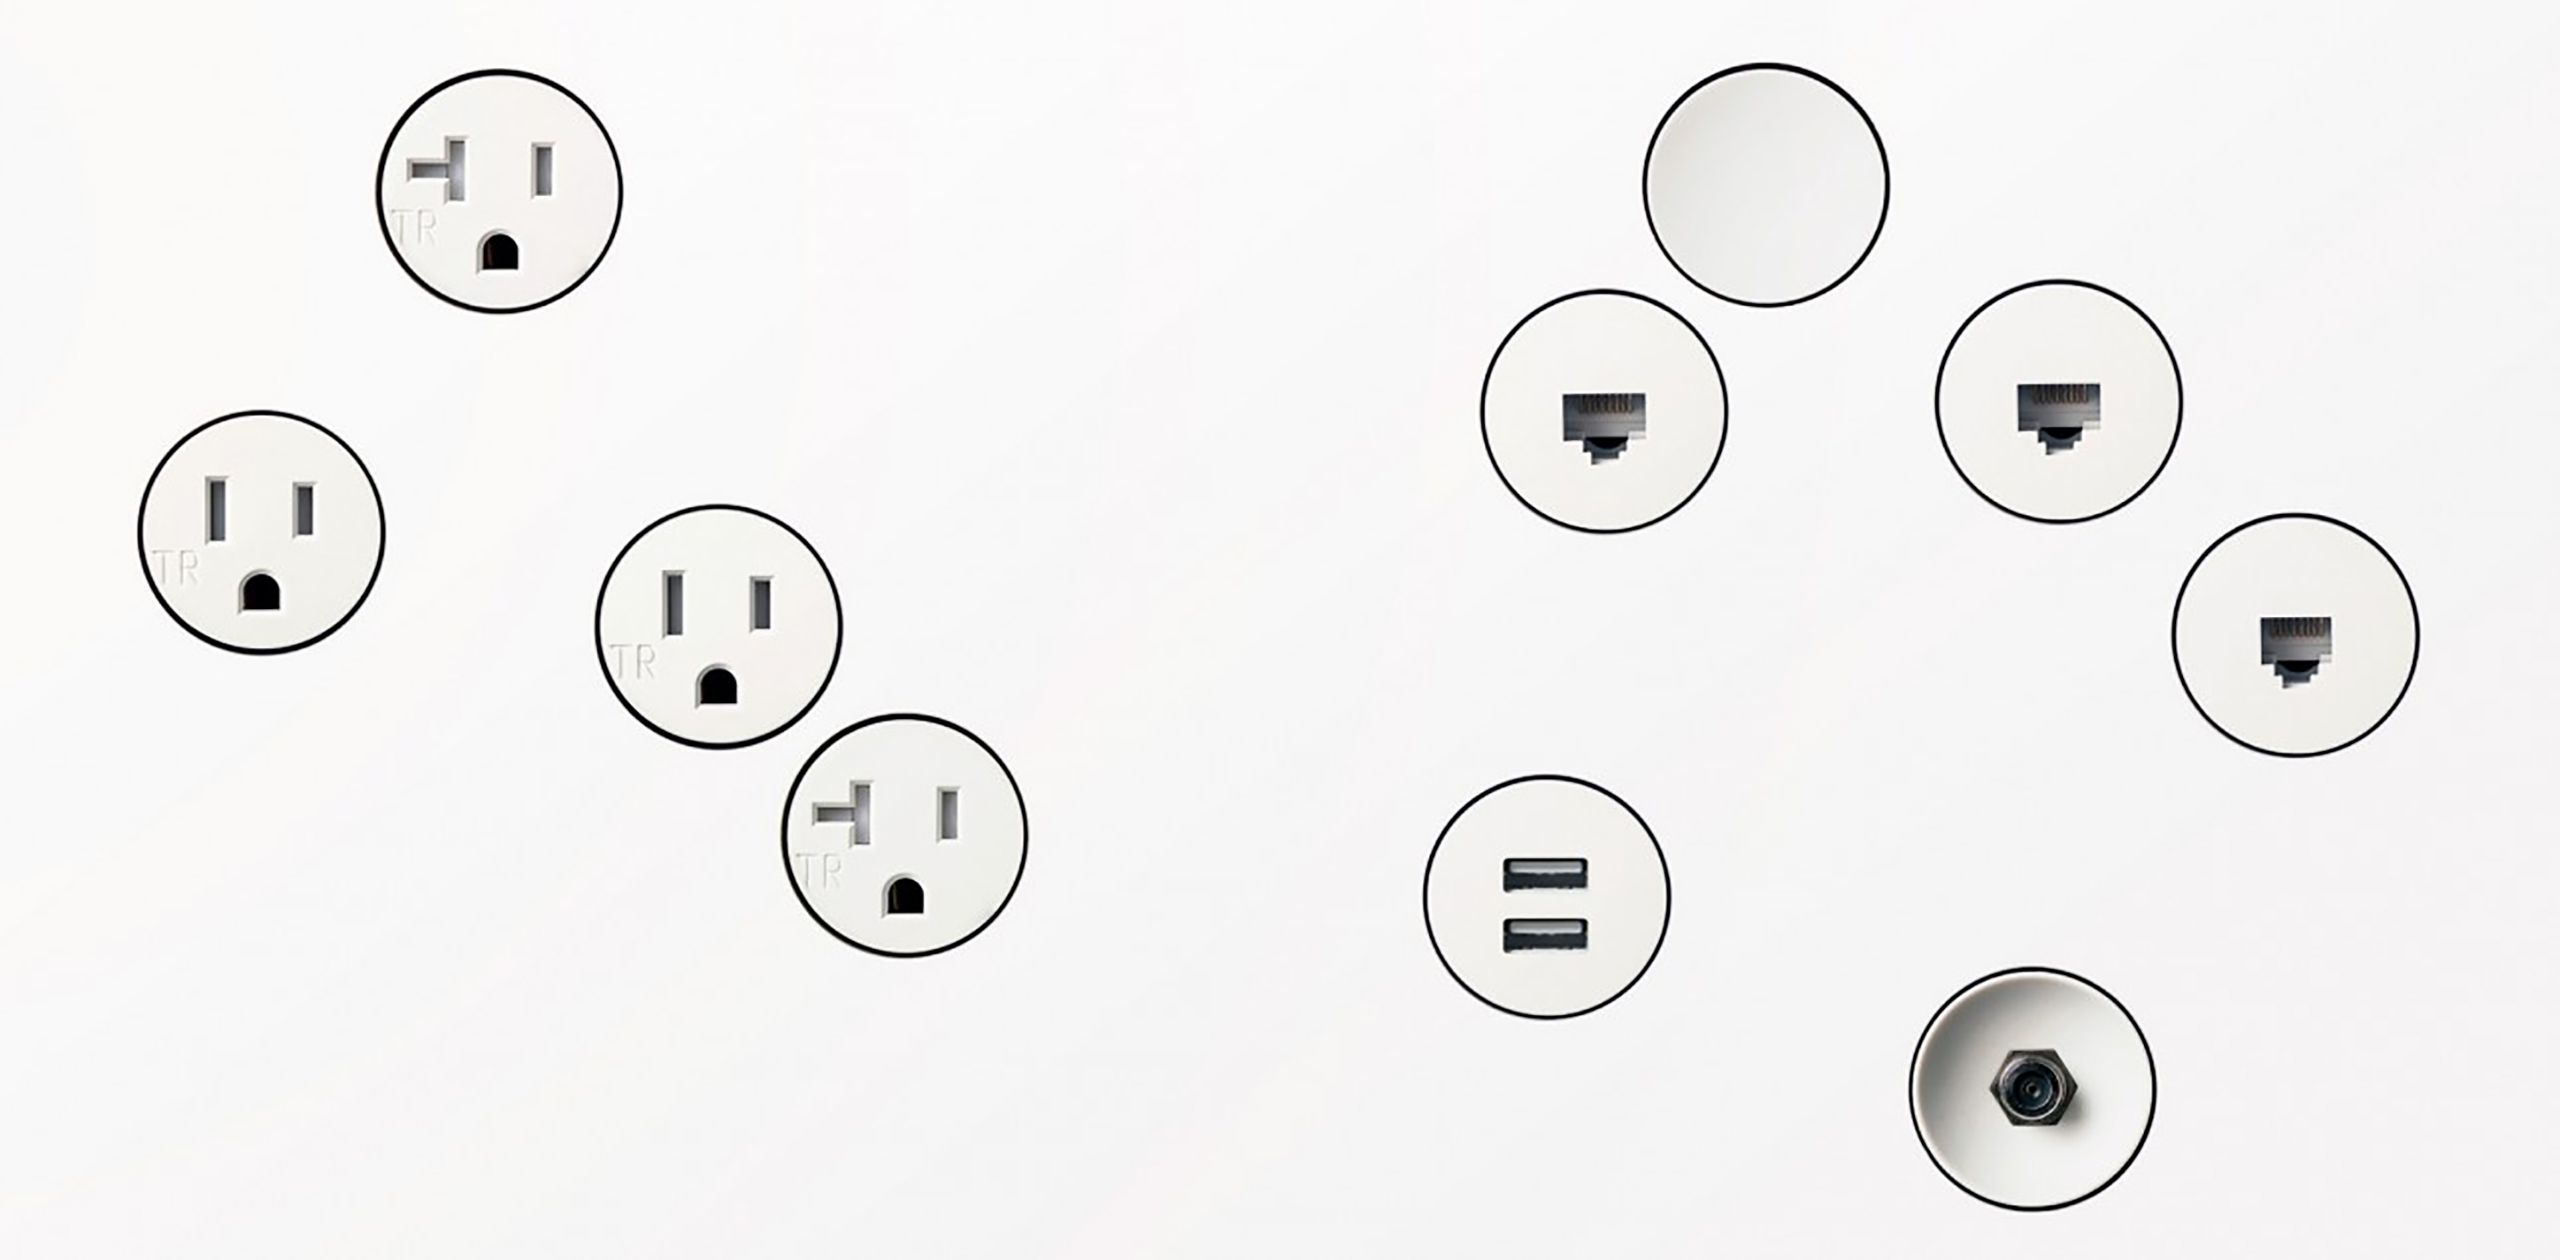 Flush Mount Drywall Outlets